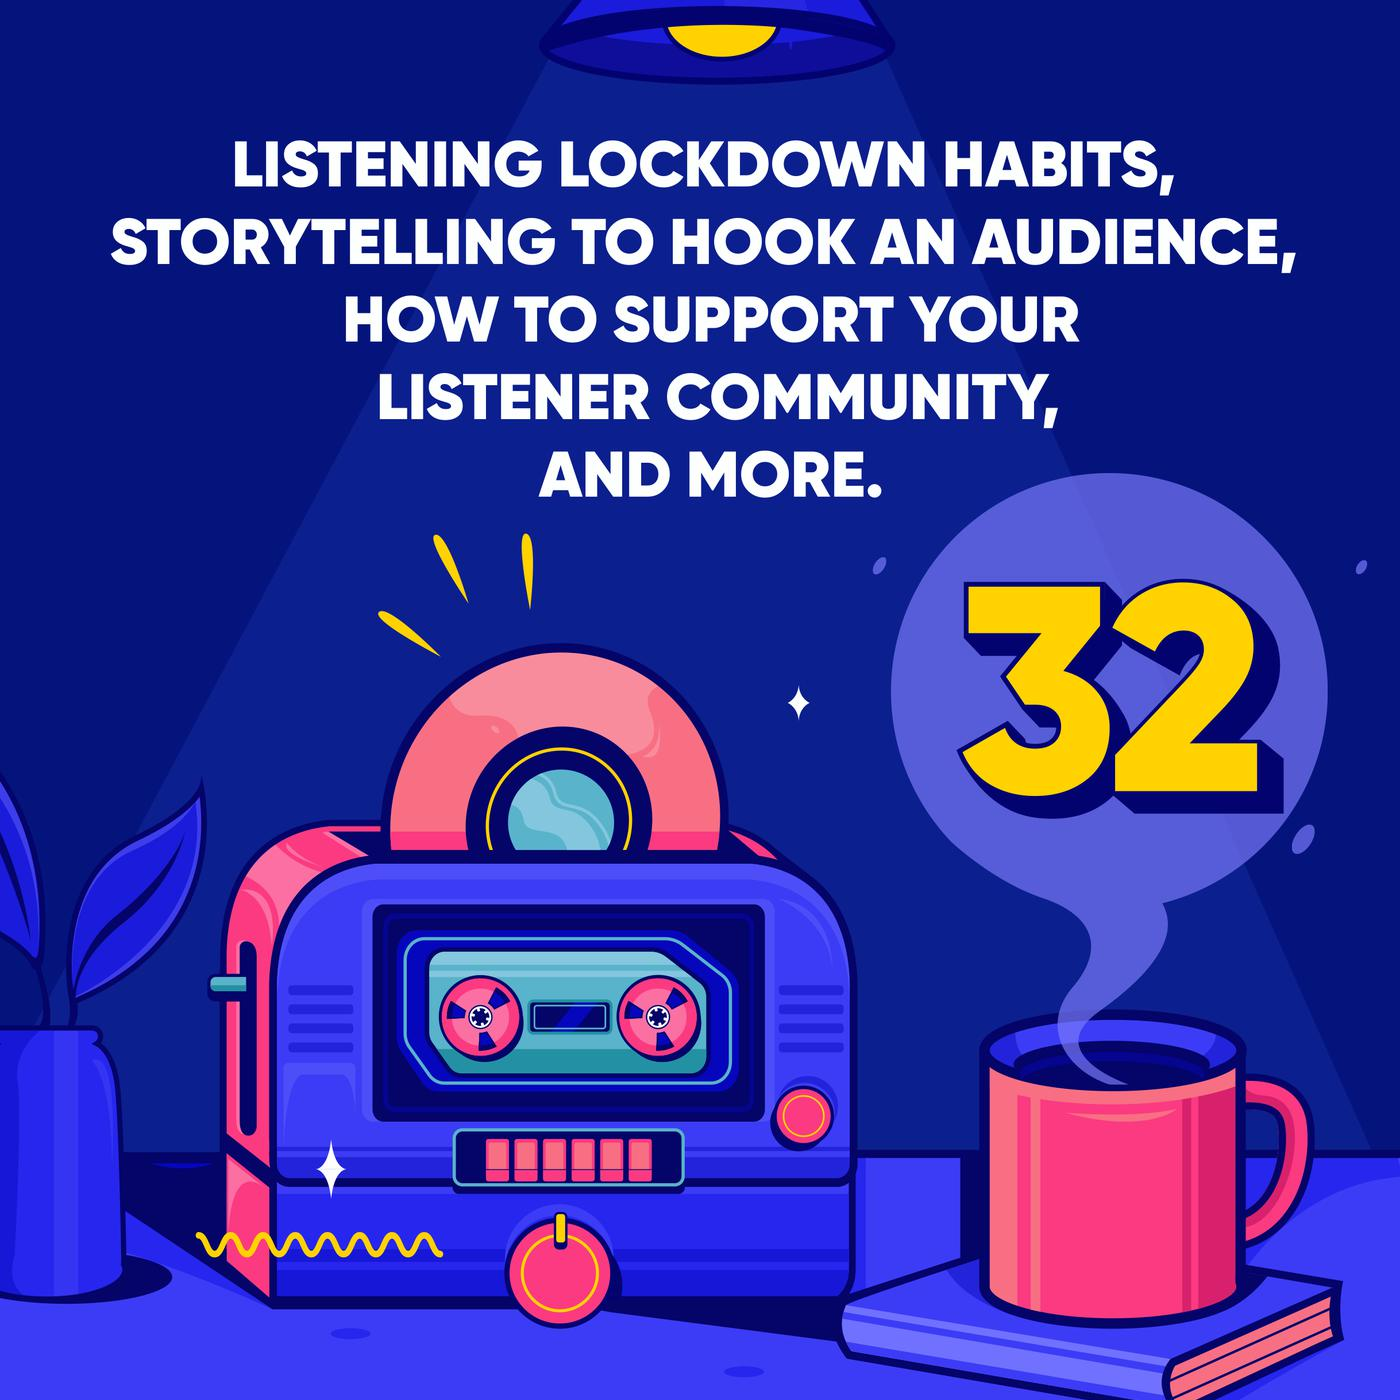 Listening Lockdown Habits, Storytelling to hook an Audience, how to Support your Listener Community, and More.